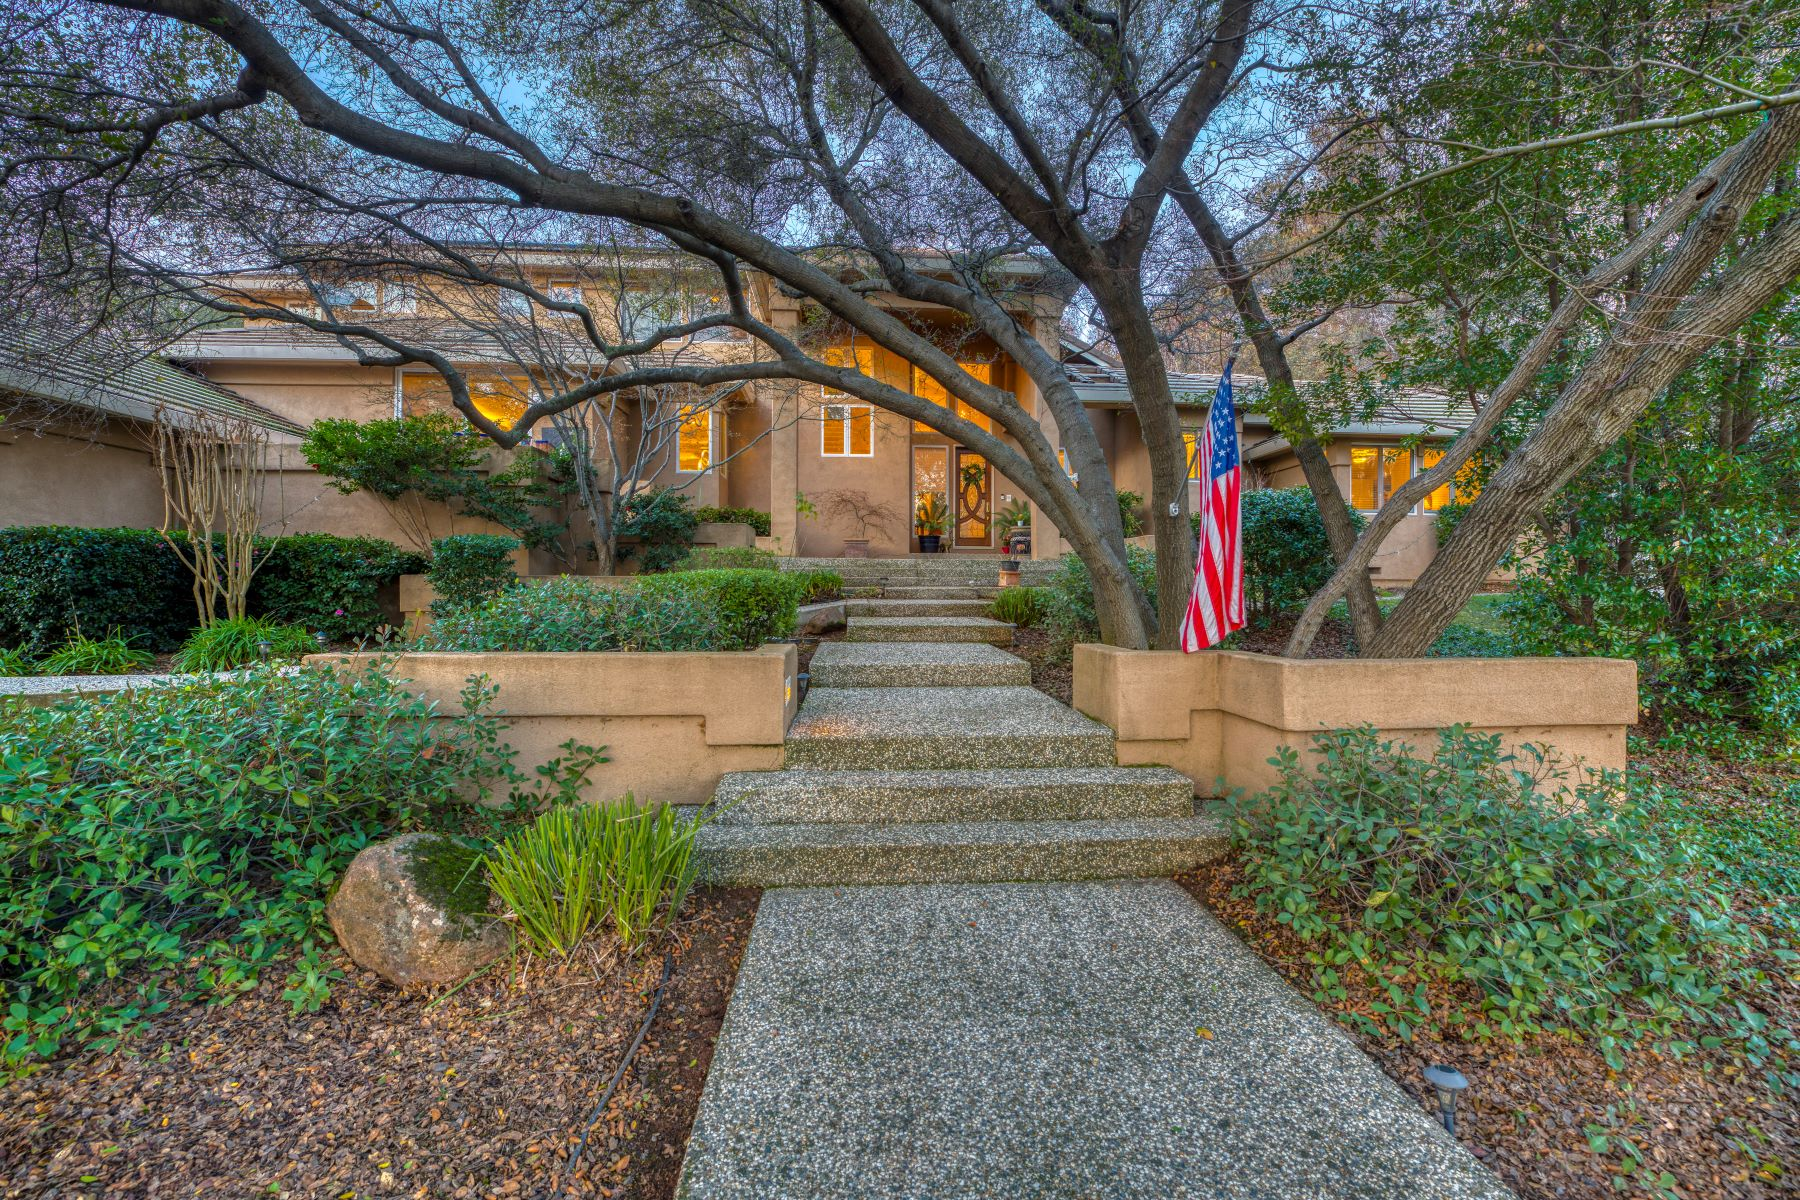 Single Family Homes for Active at 3381 Tartan Trail, El Dorado Hills, CA 95762 3381 Tartan Trail El Dorado Hills, California 95762 United States